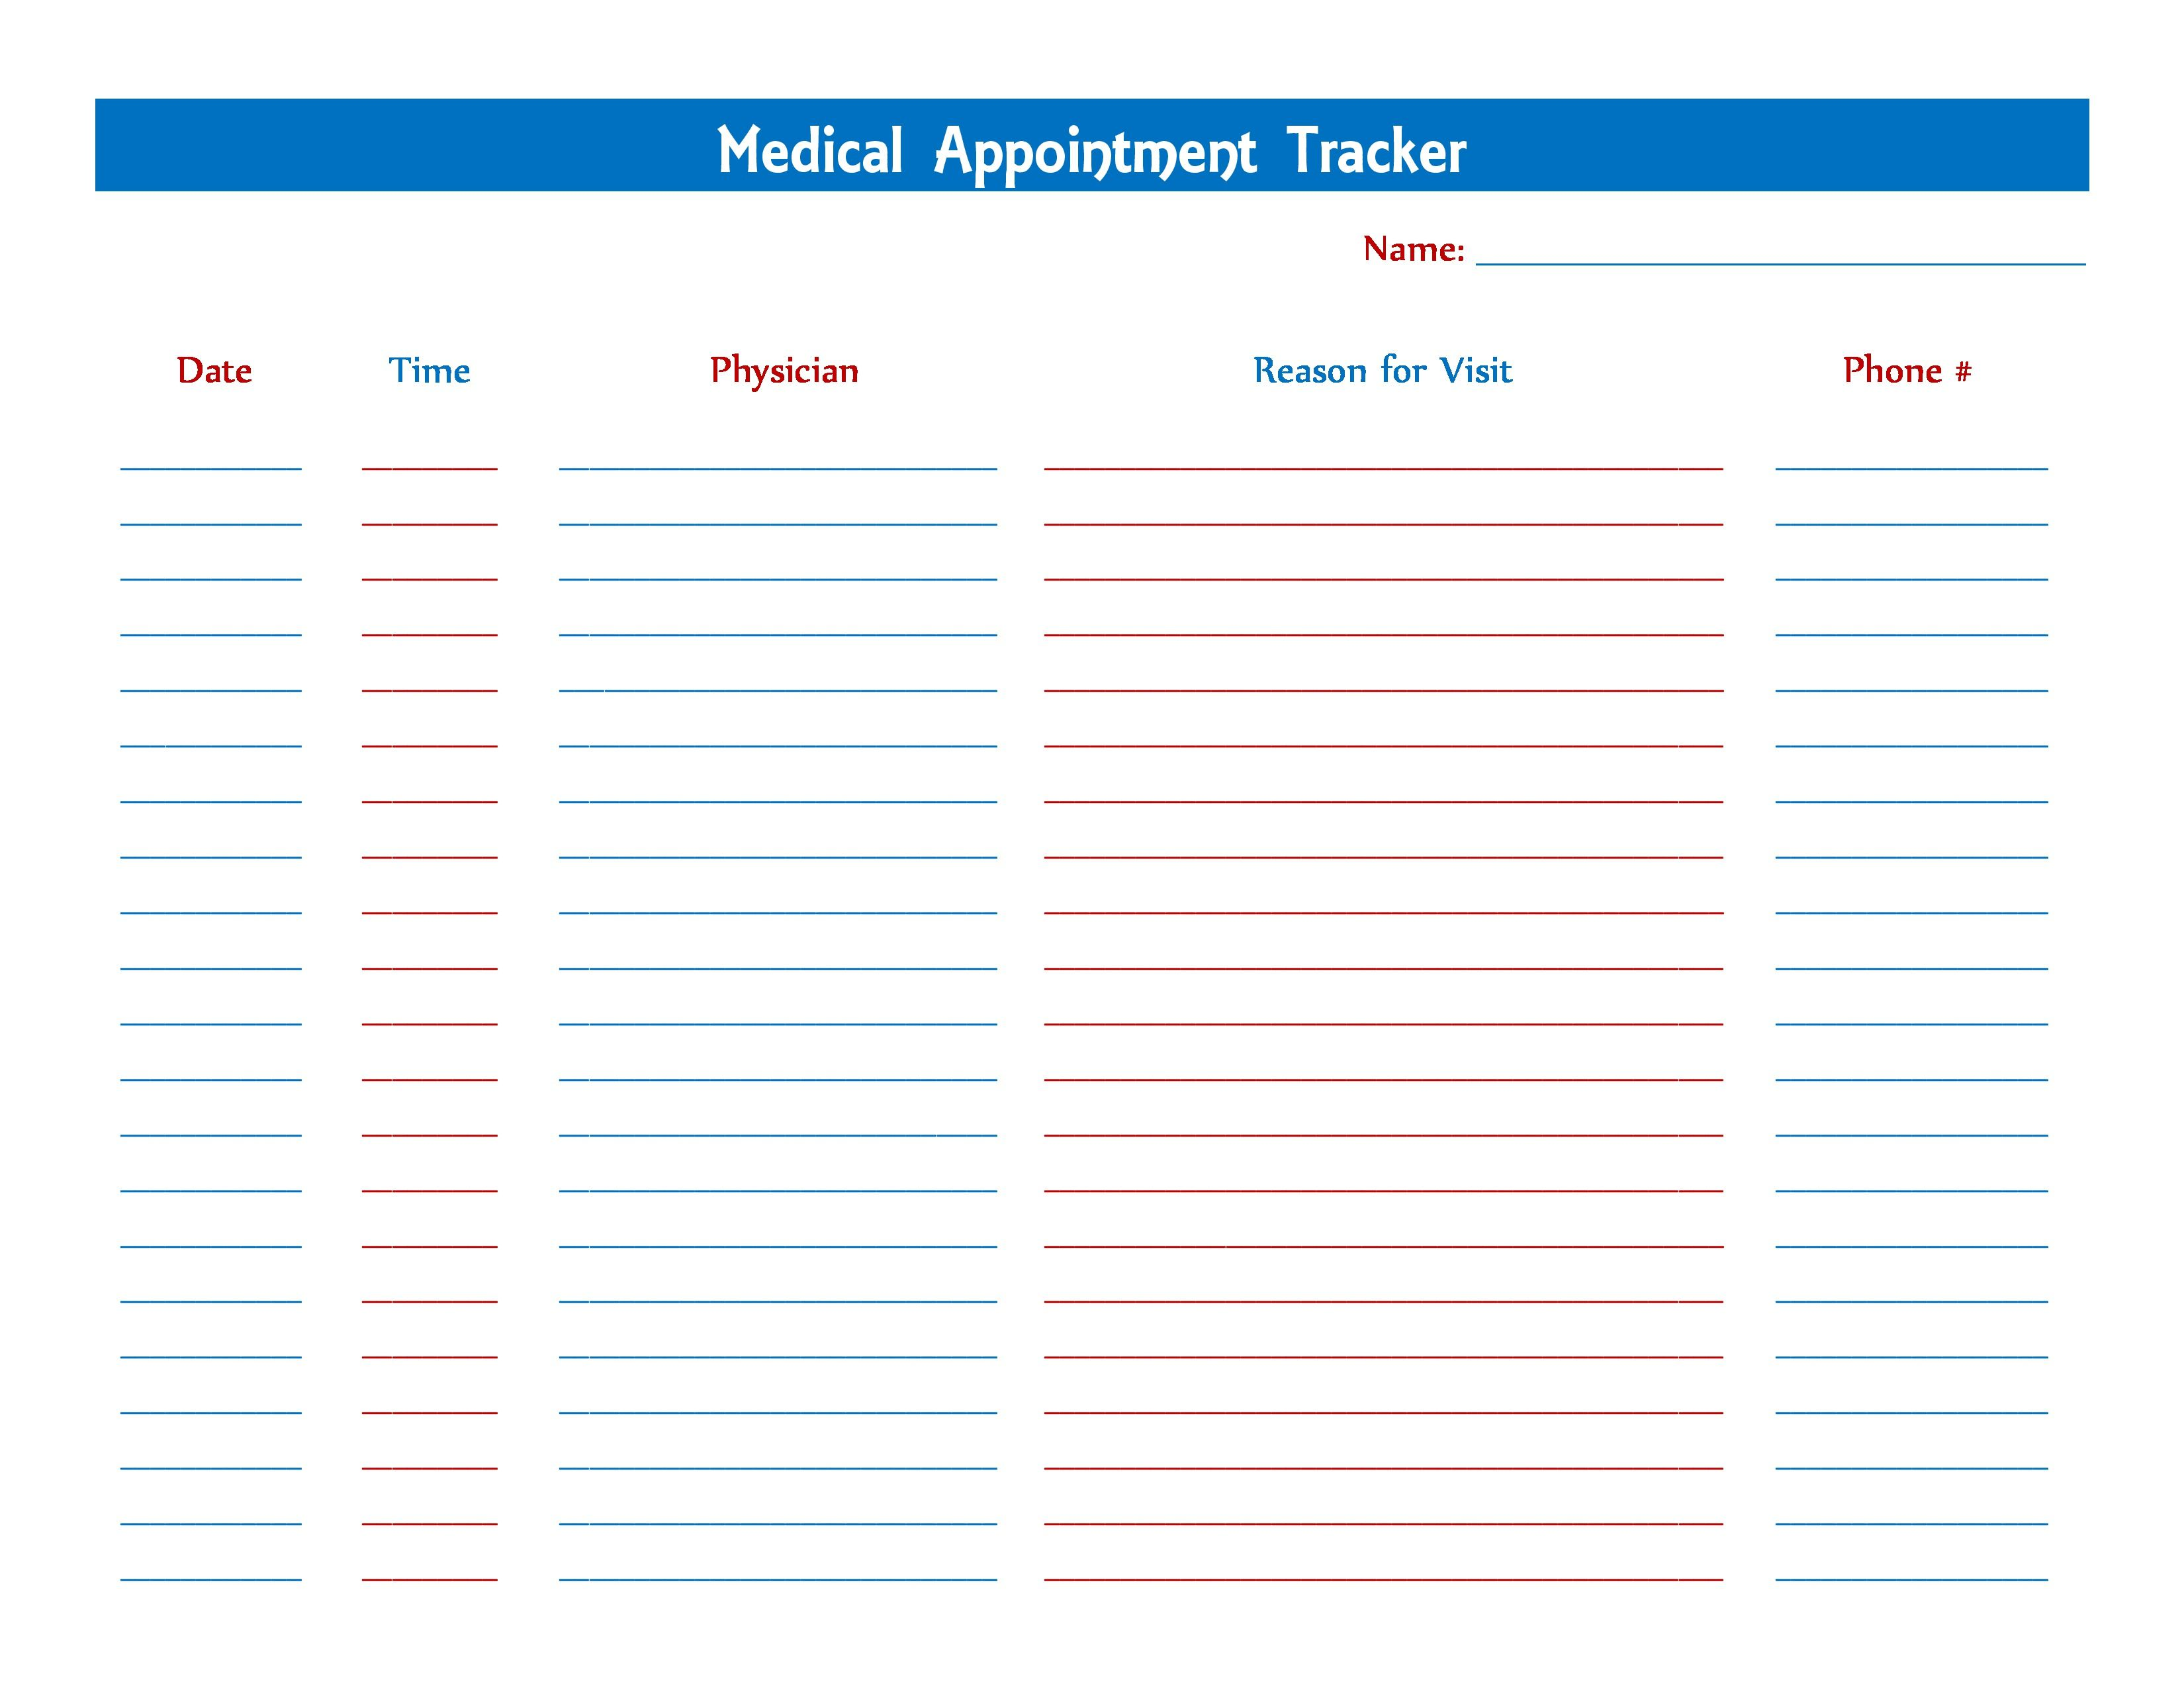 Medical Appointment Tracker